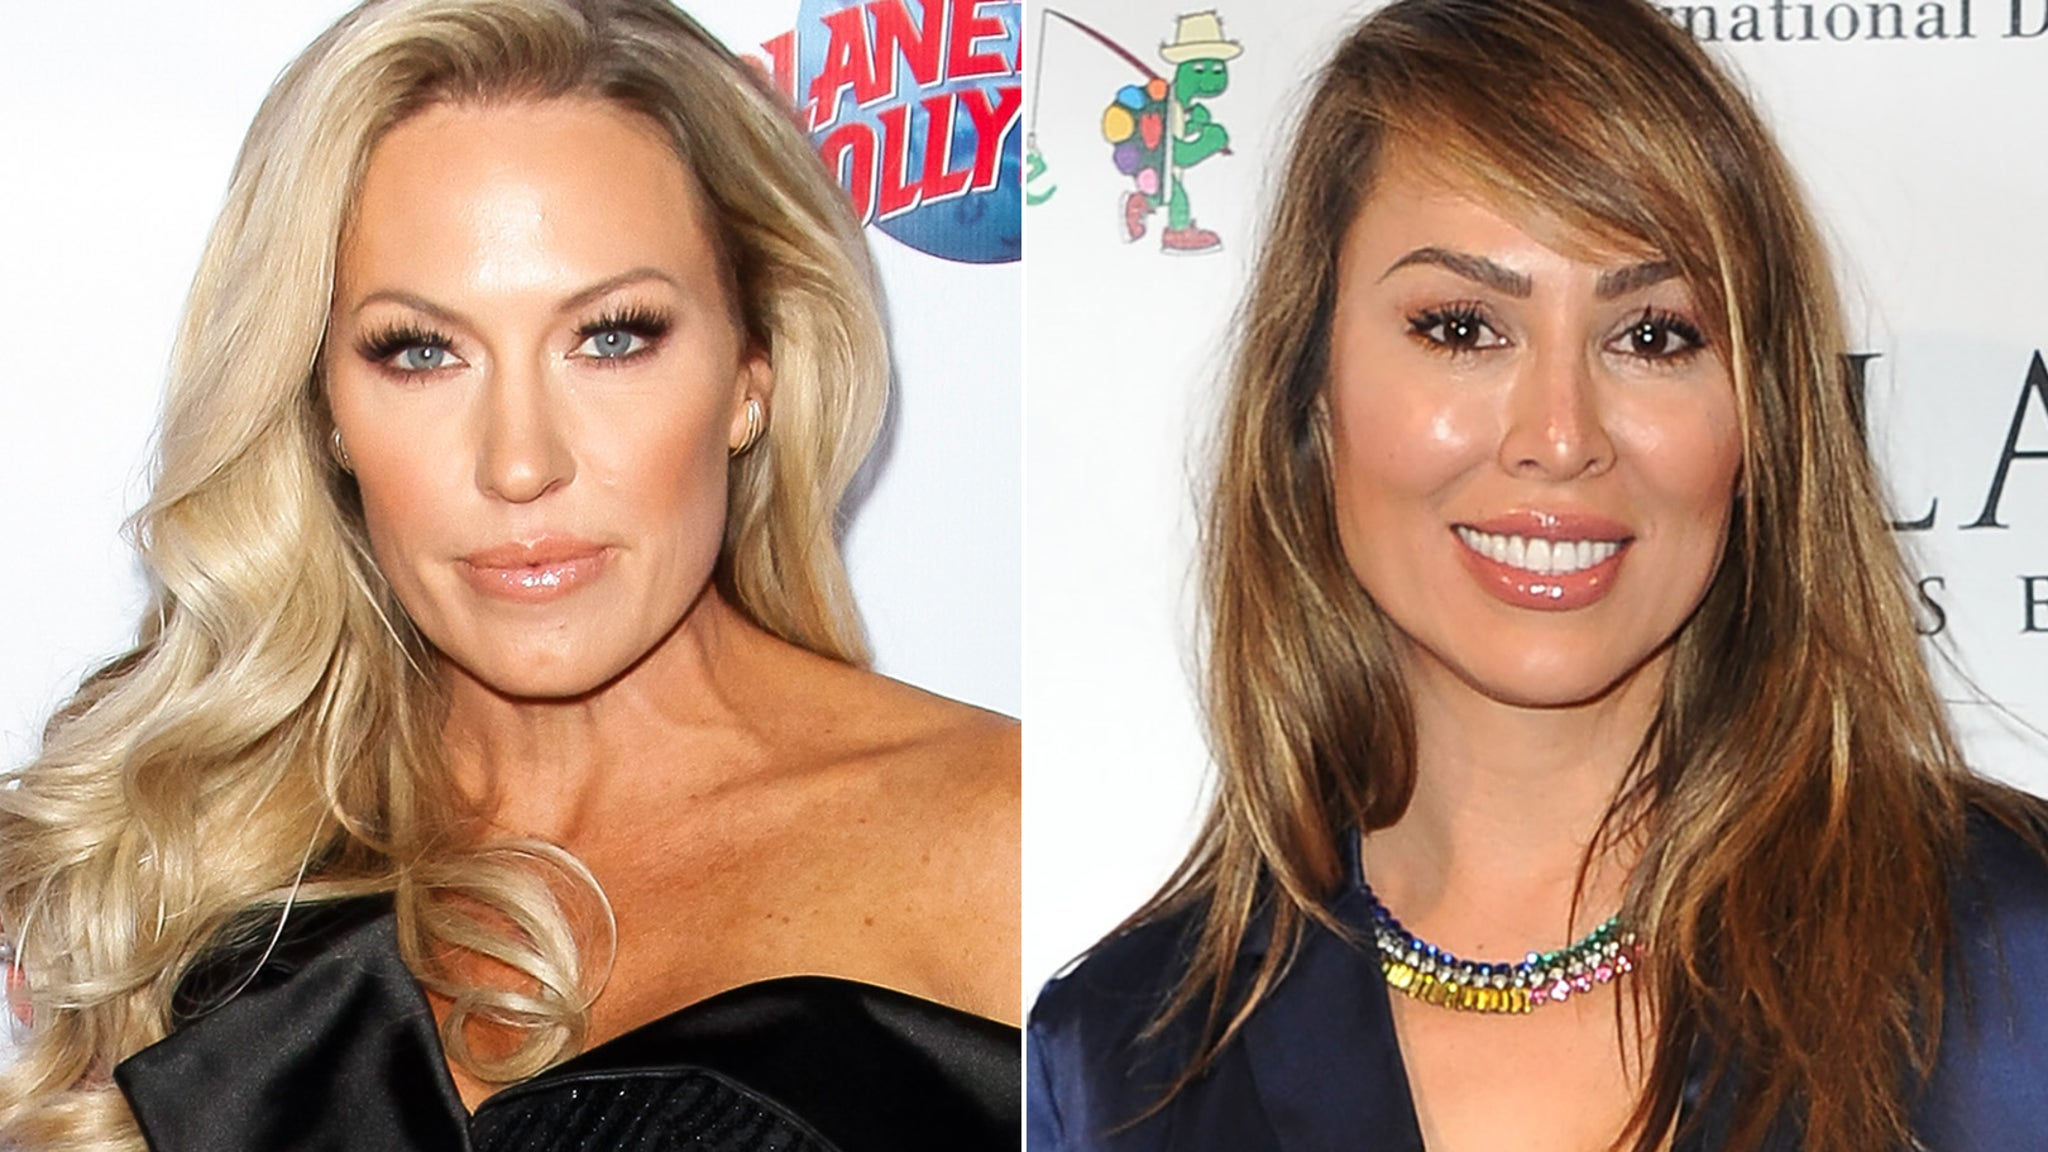 Braunwyn Windham-Burke reacts to Kelly Dodd's texts by blaming her for expulsion from RHOC